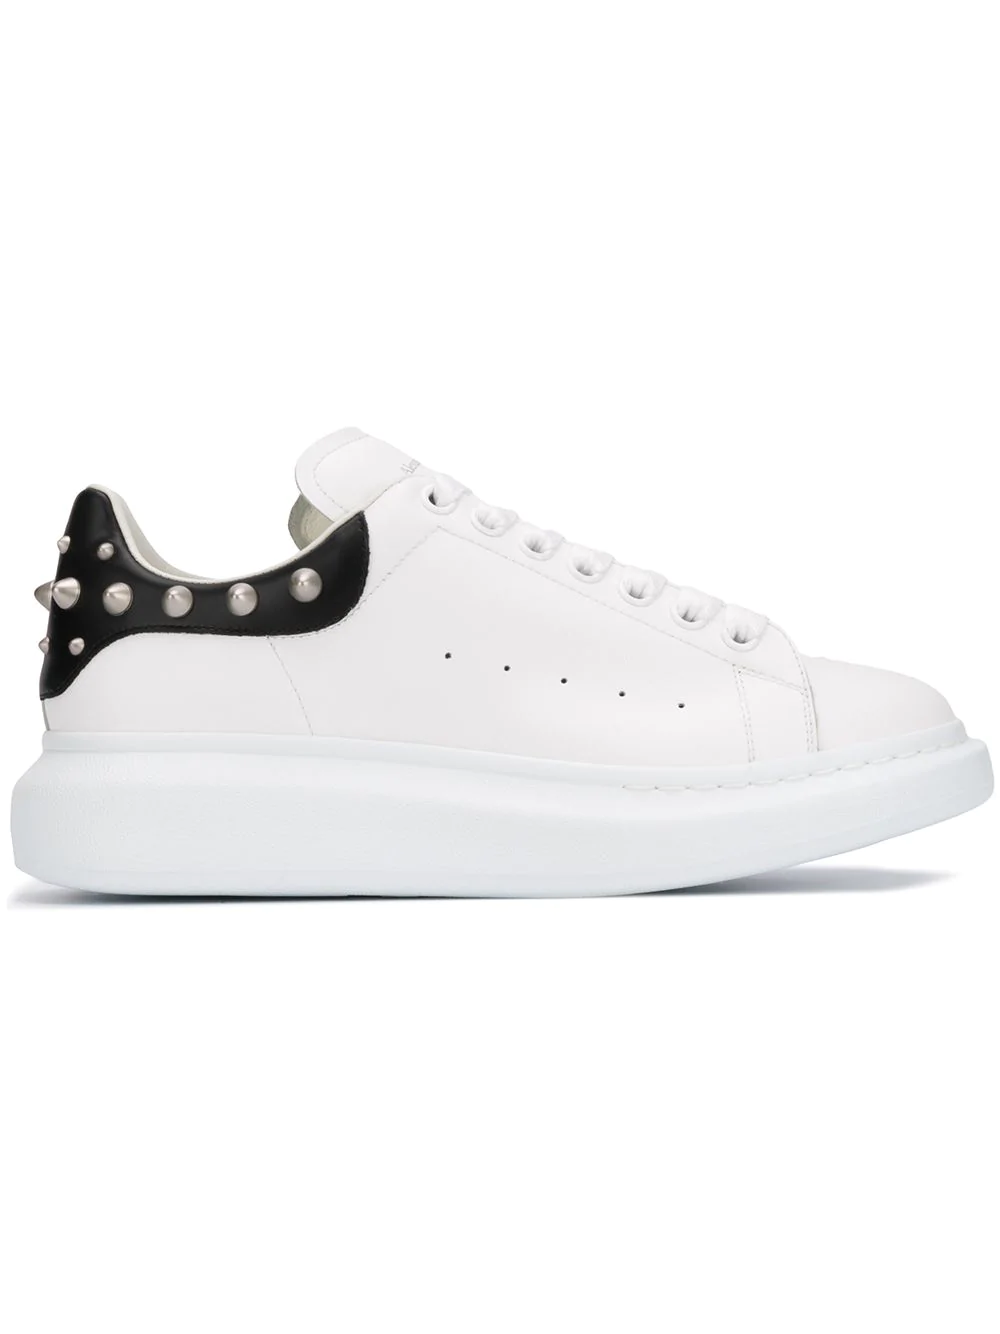 77b700240284 Alexander Mcqueen Men s Larry Leather Lace-Up Platform Sneakers With Spiked  Trim In White